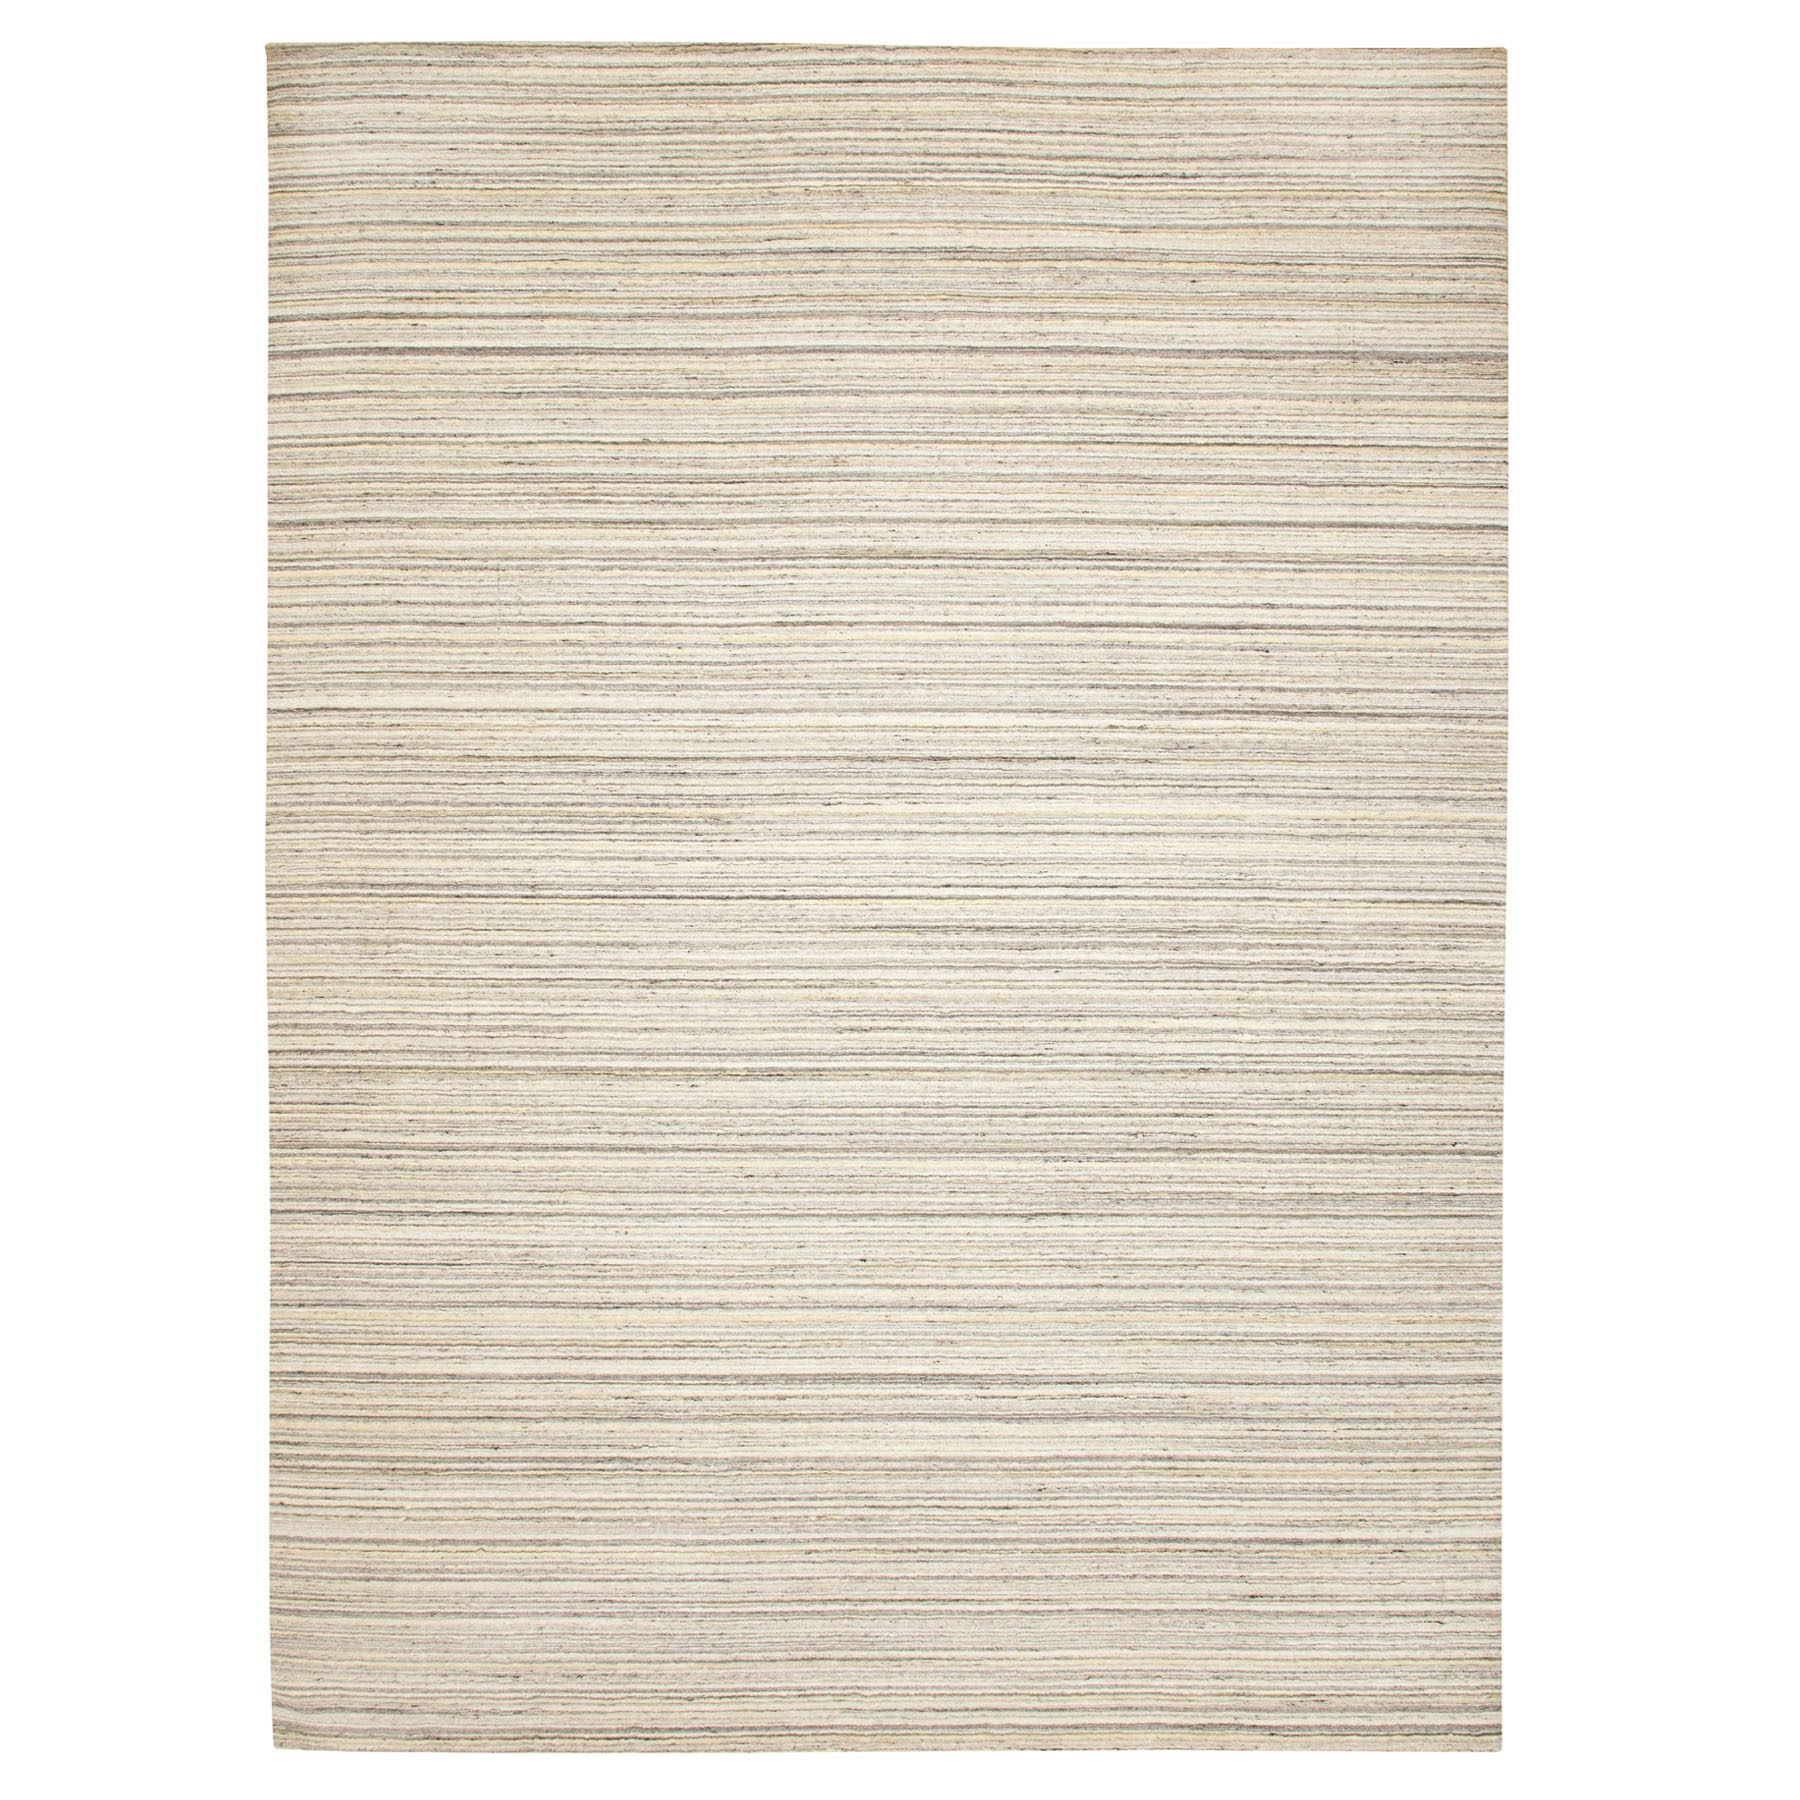 Mid Century Modern Collection Hand Loomed Beige Rug No: 1116732